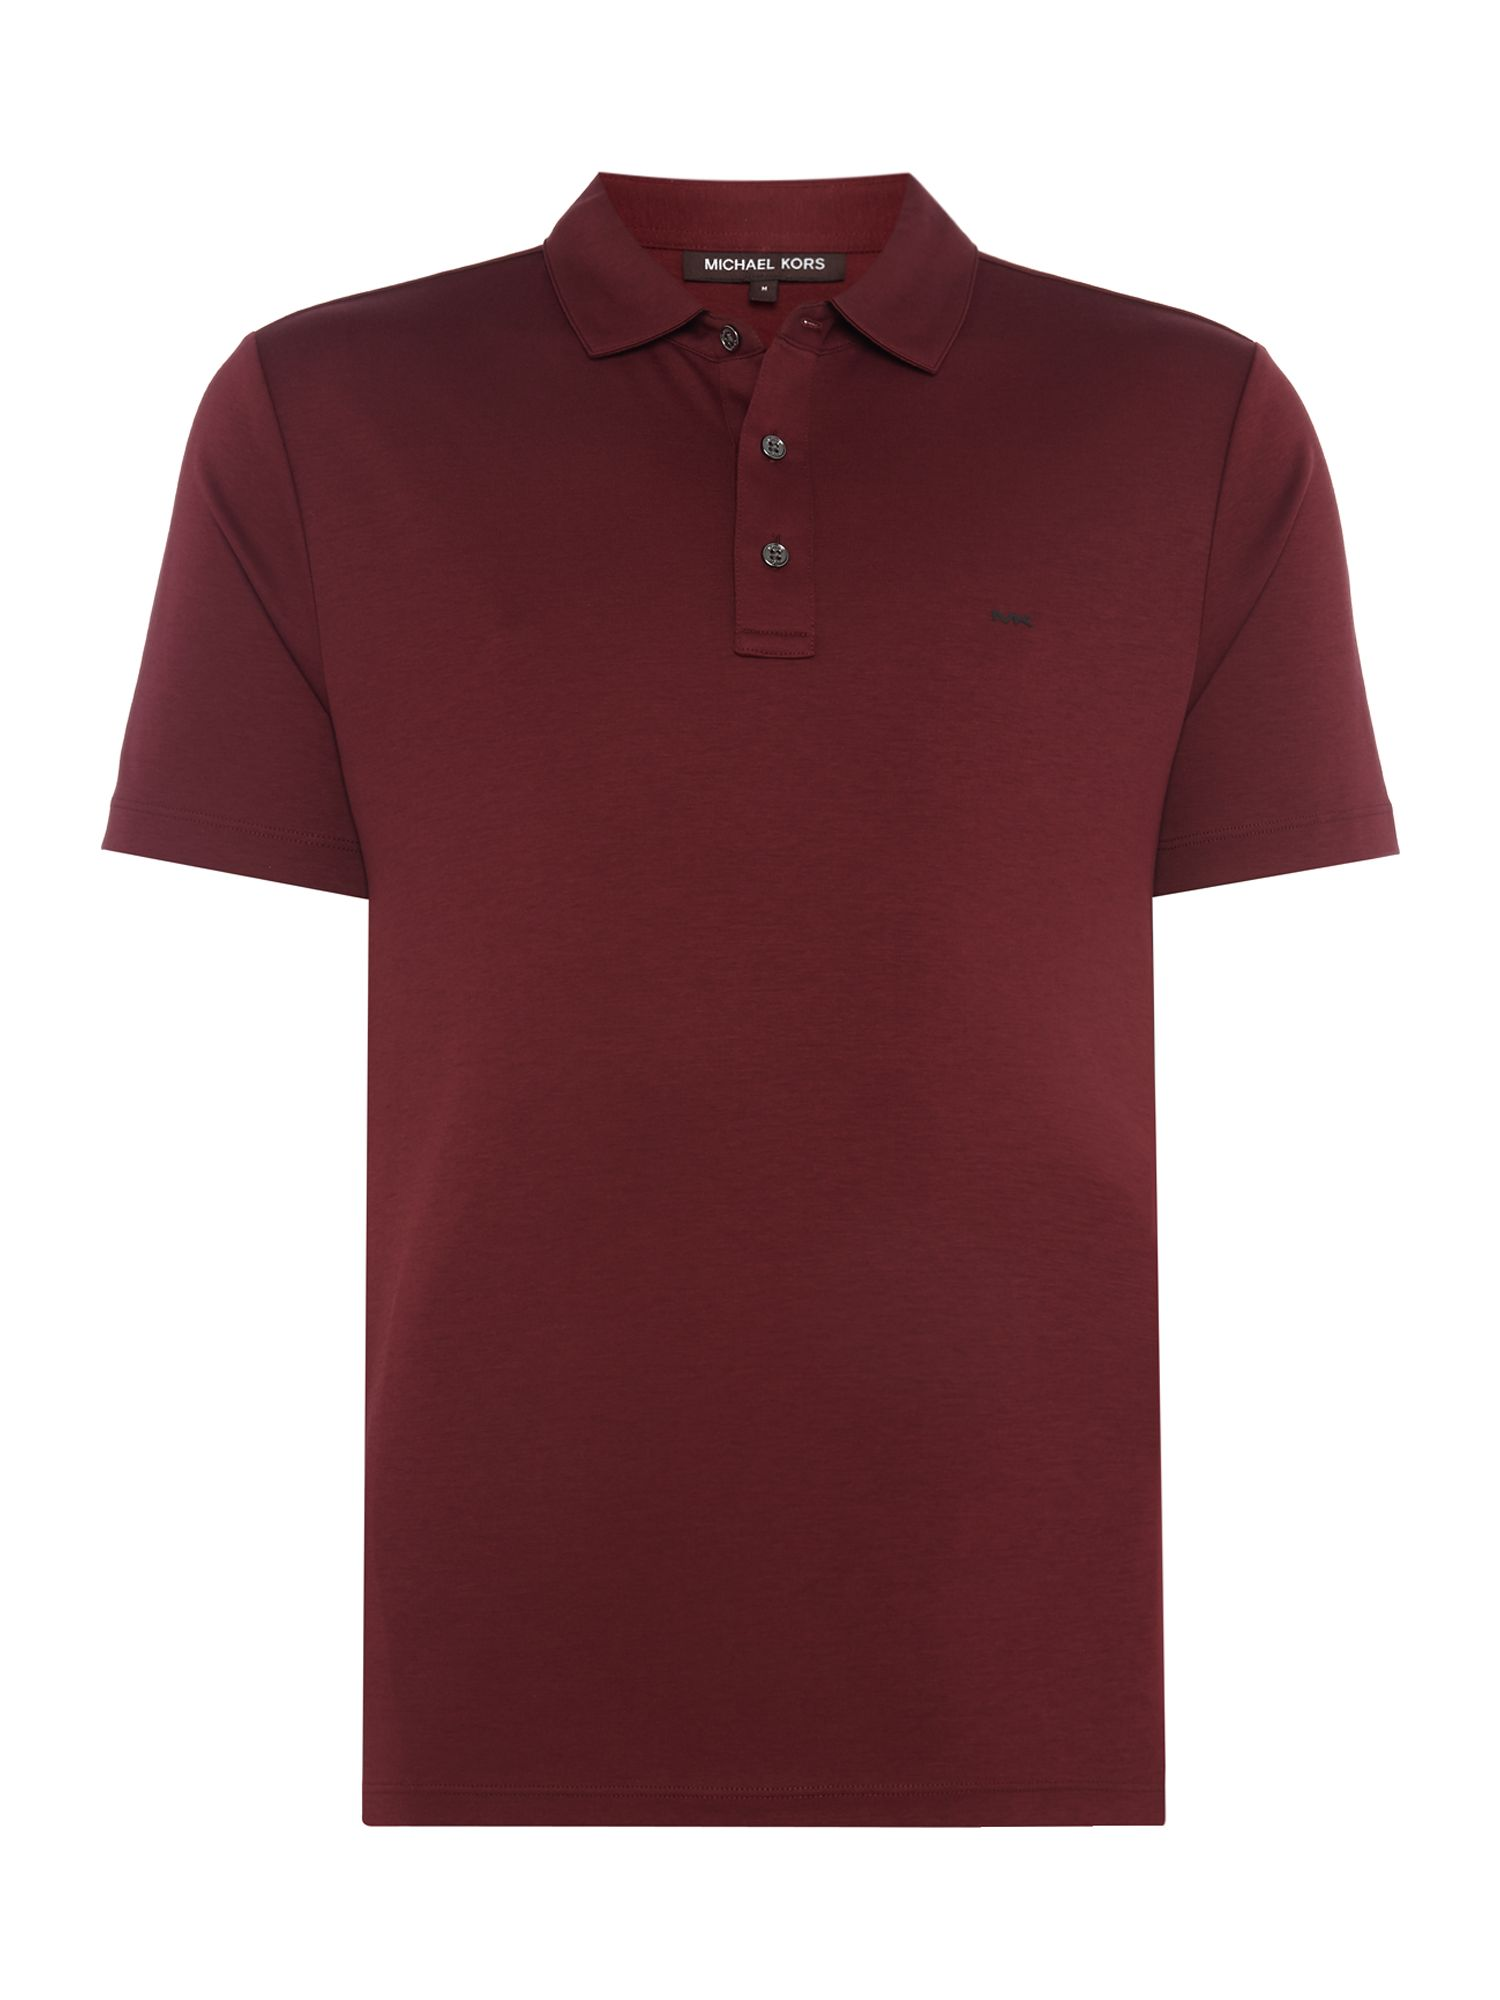 Men's Michael Kors Sleek Slim Fit Polo Shirt, Red